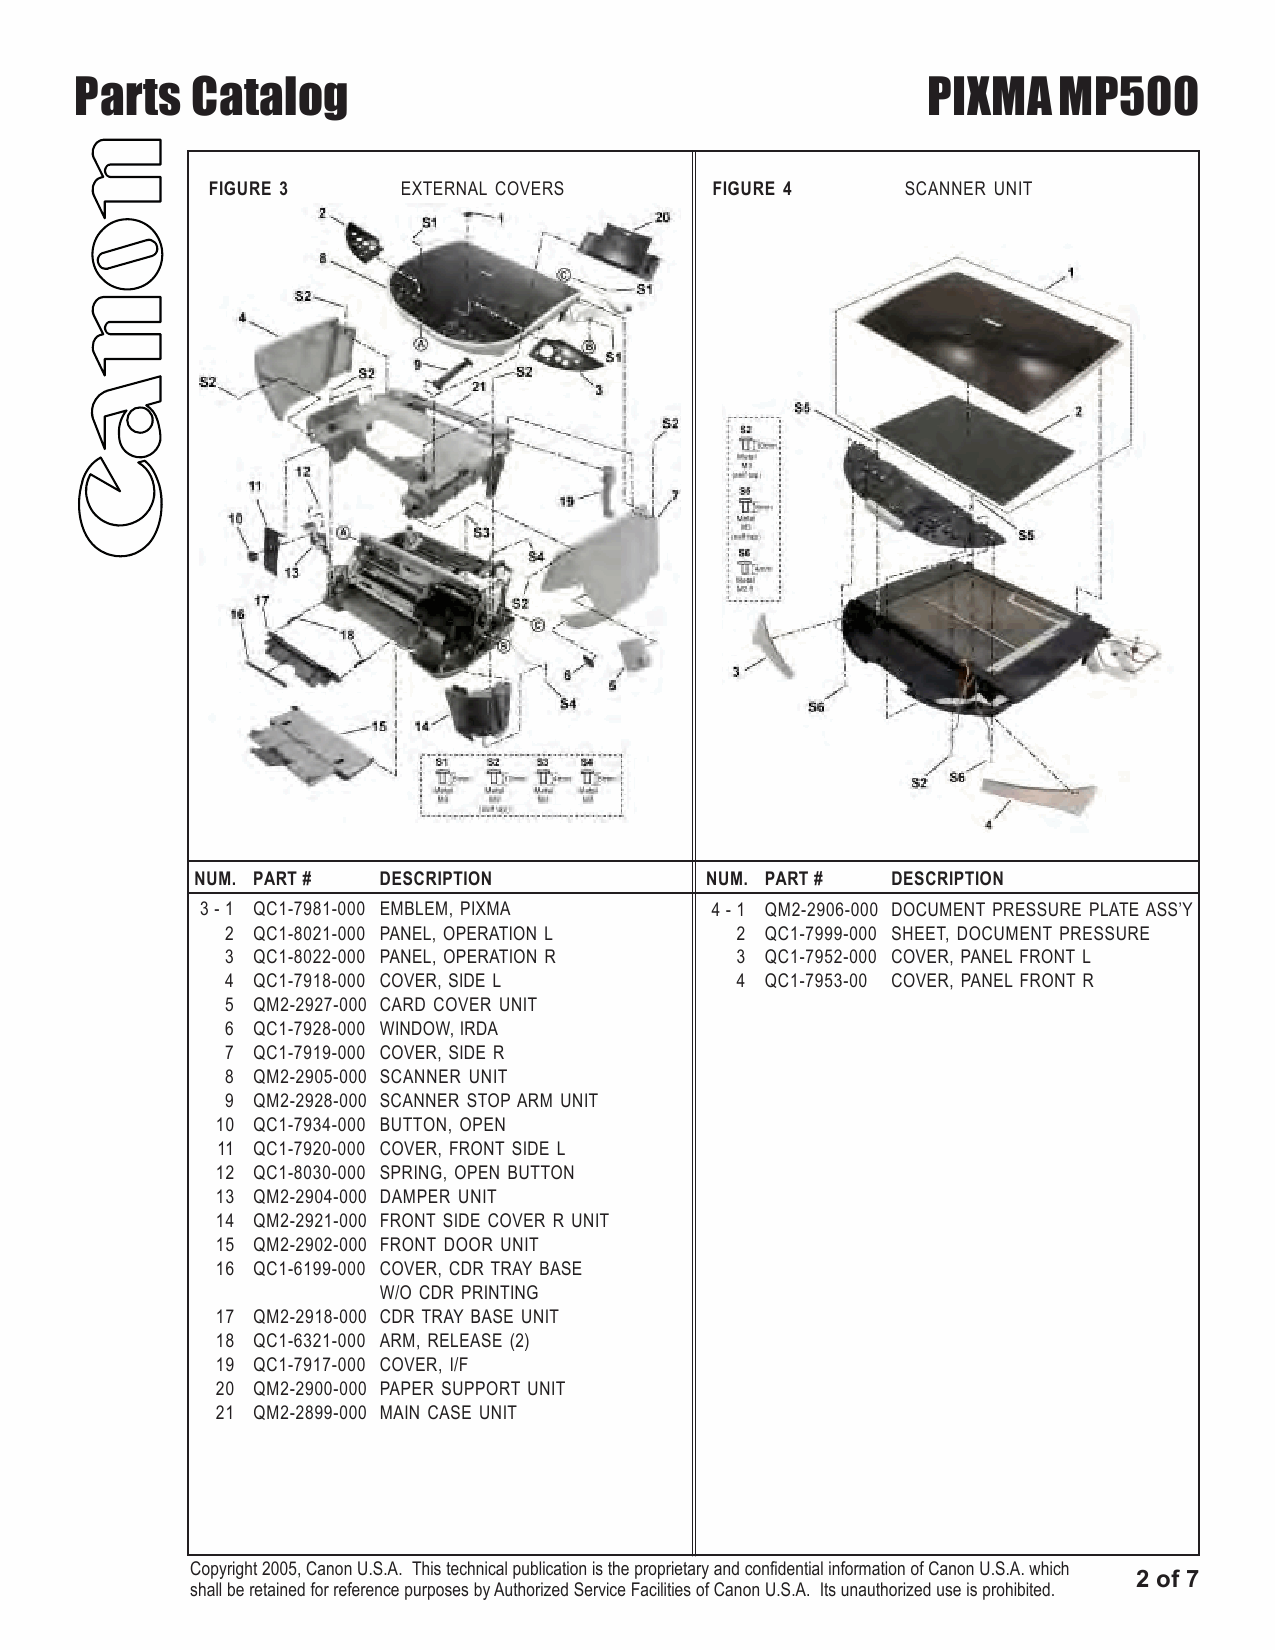 Canon PIXMA MP500 Parts Catalog Manual-3